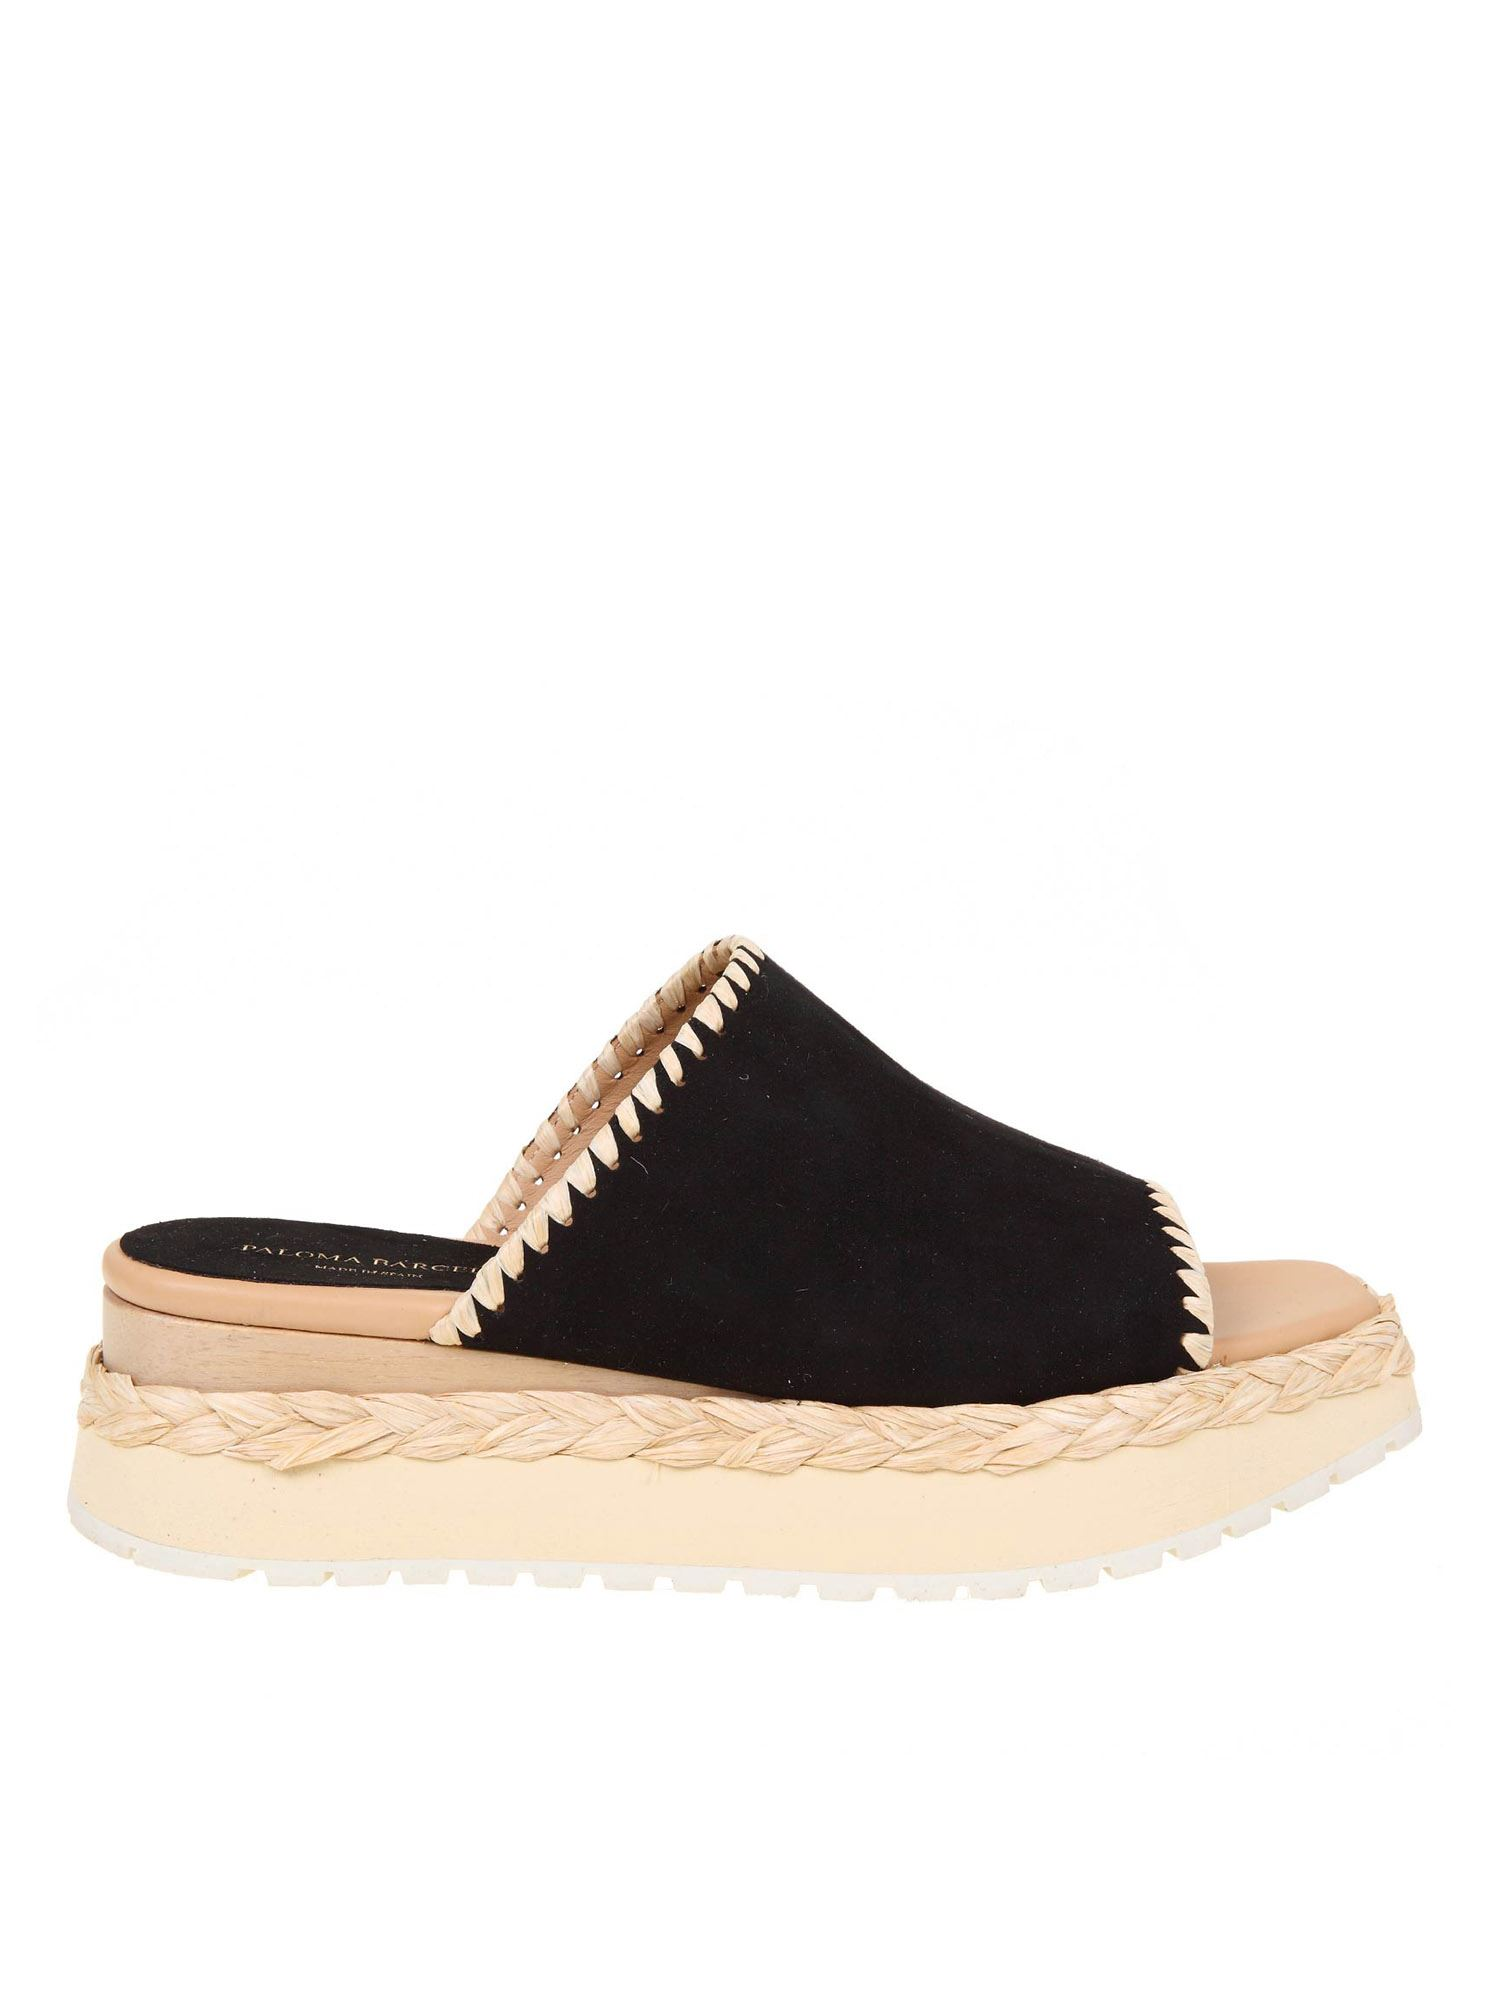 Paloma Barceló APAPORIS SANDALS IN CAMOSCIO AND BLACK